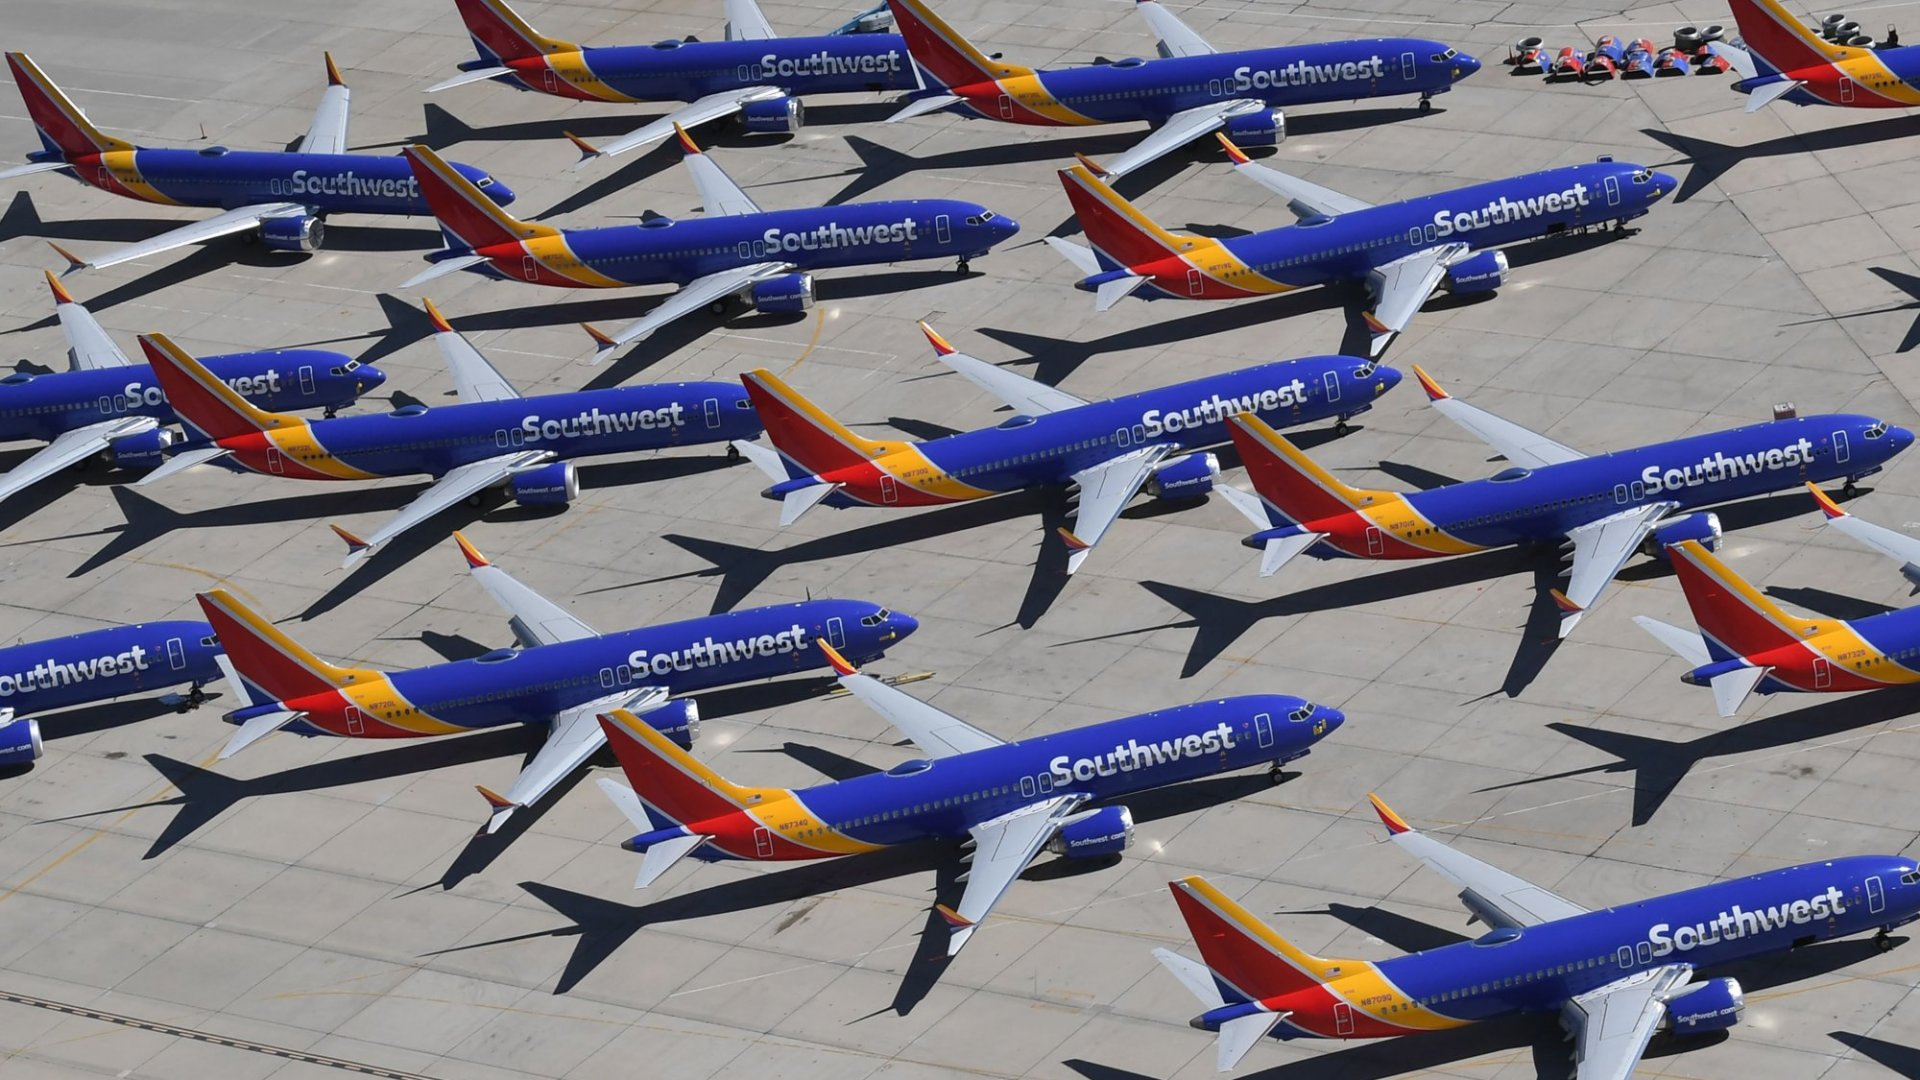 Southwest Airlines Just Made a Big Announcement That Will Make Southwest Employees Very Happy